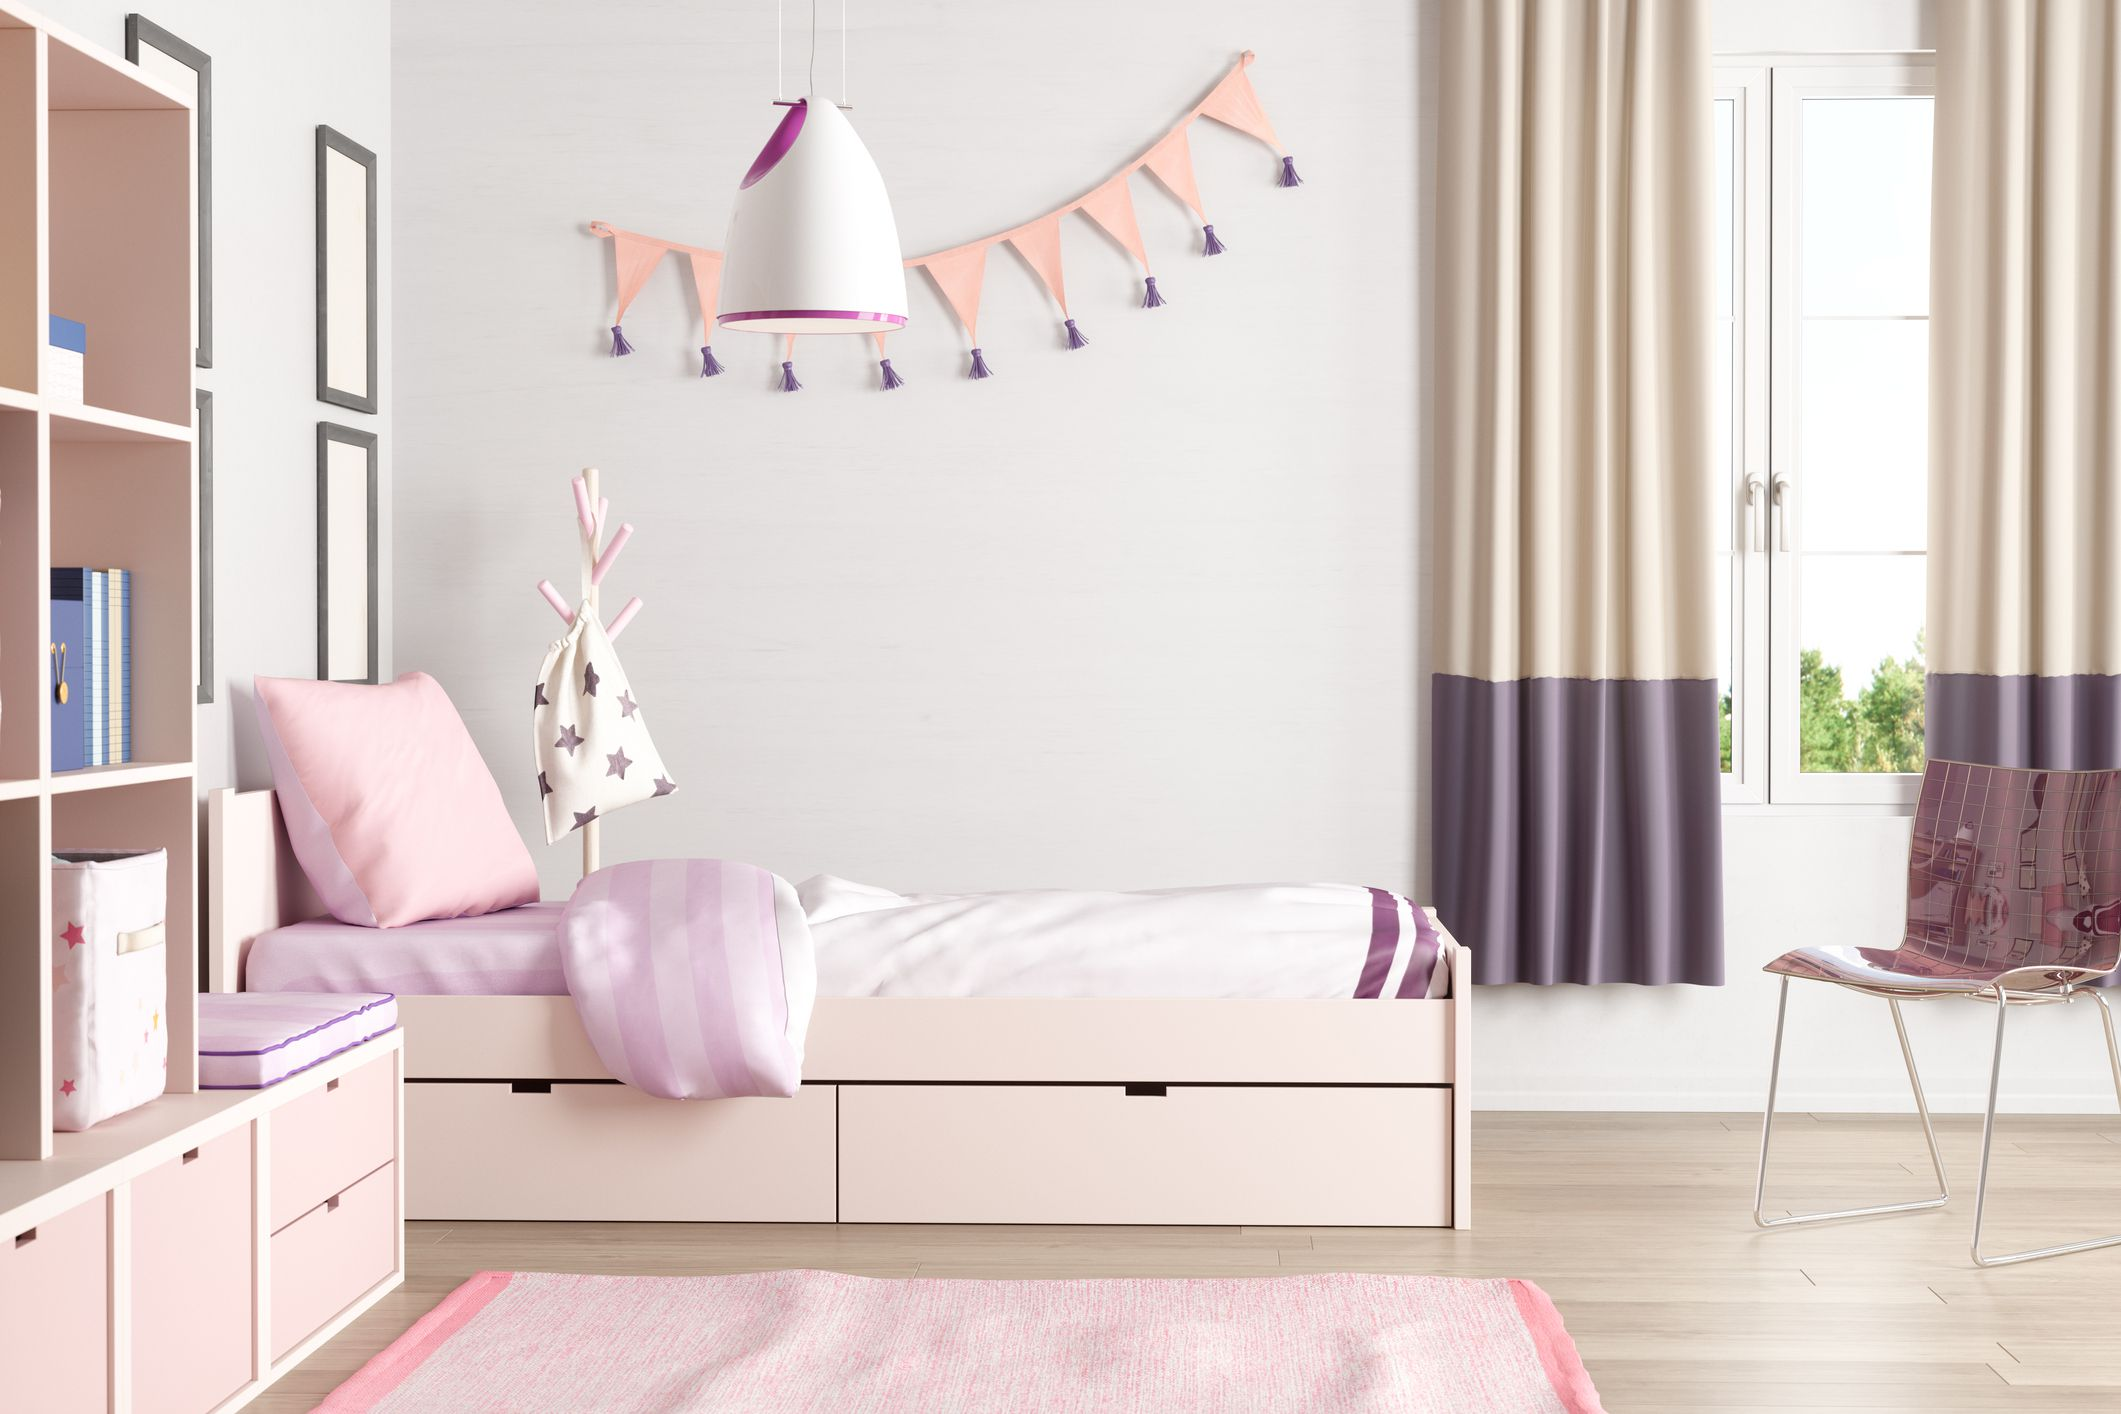 Budget decorating ideas for teenage bedrooms How to decorate a teenage room